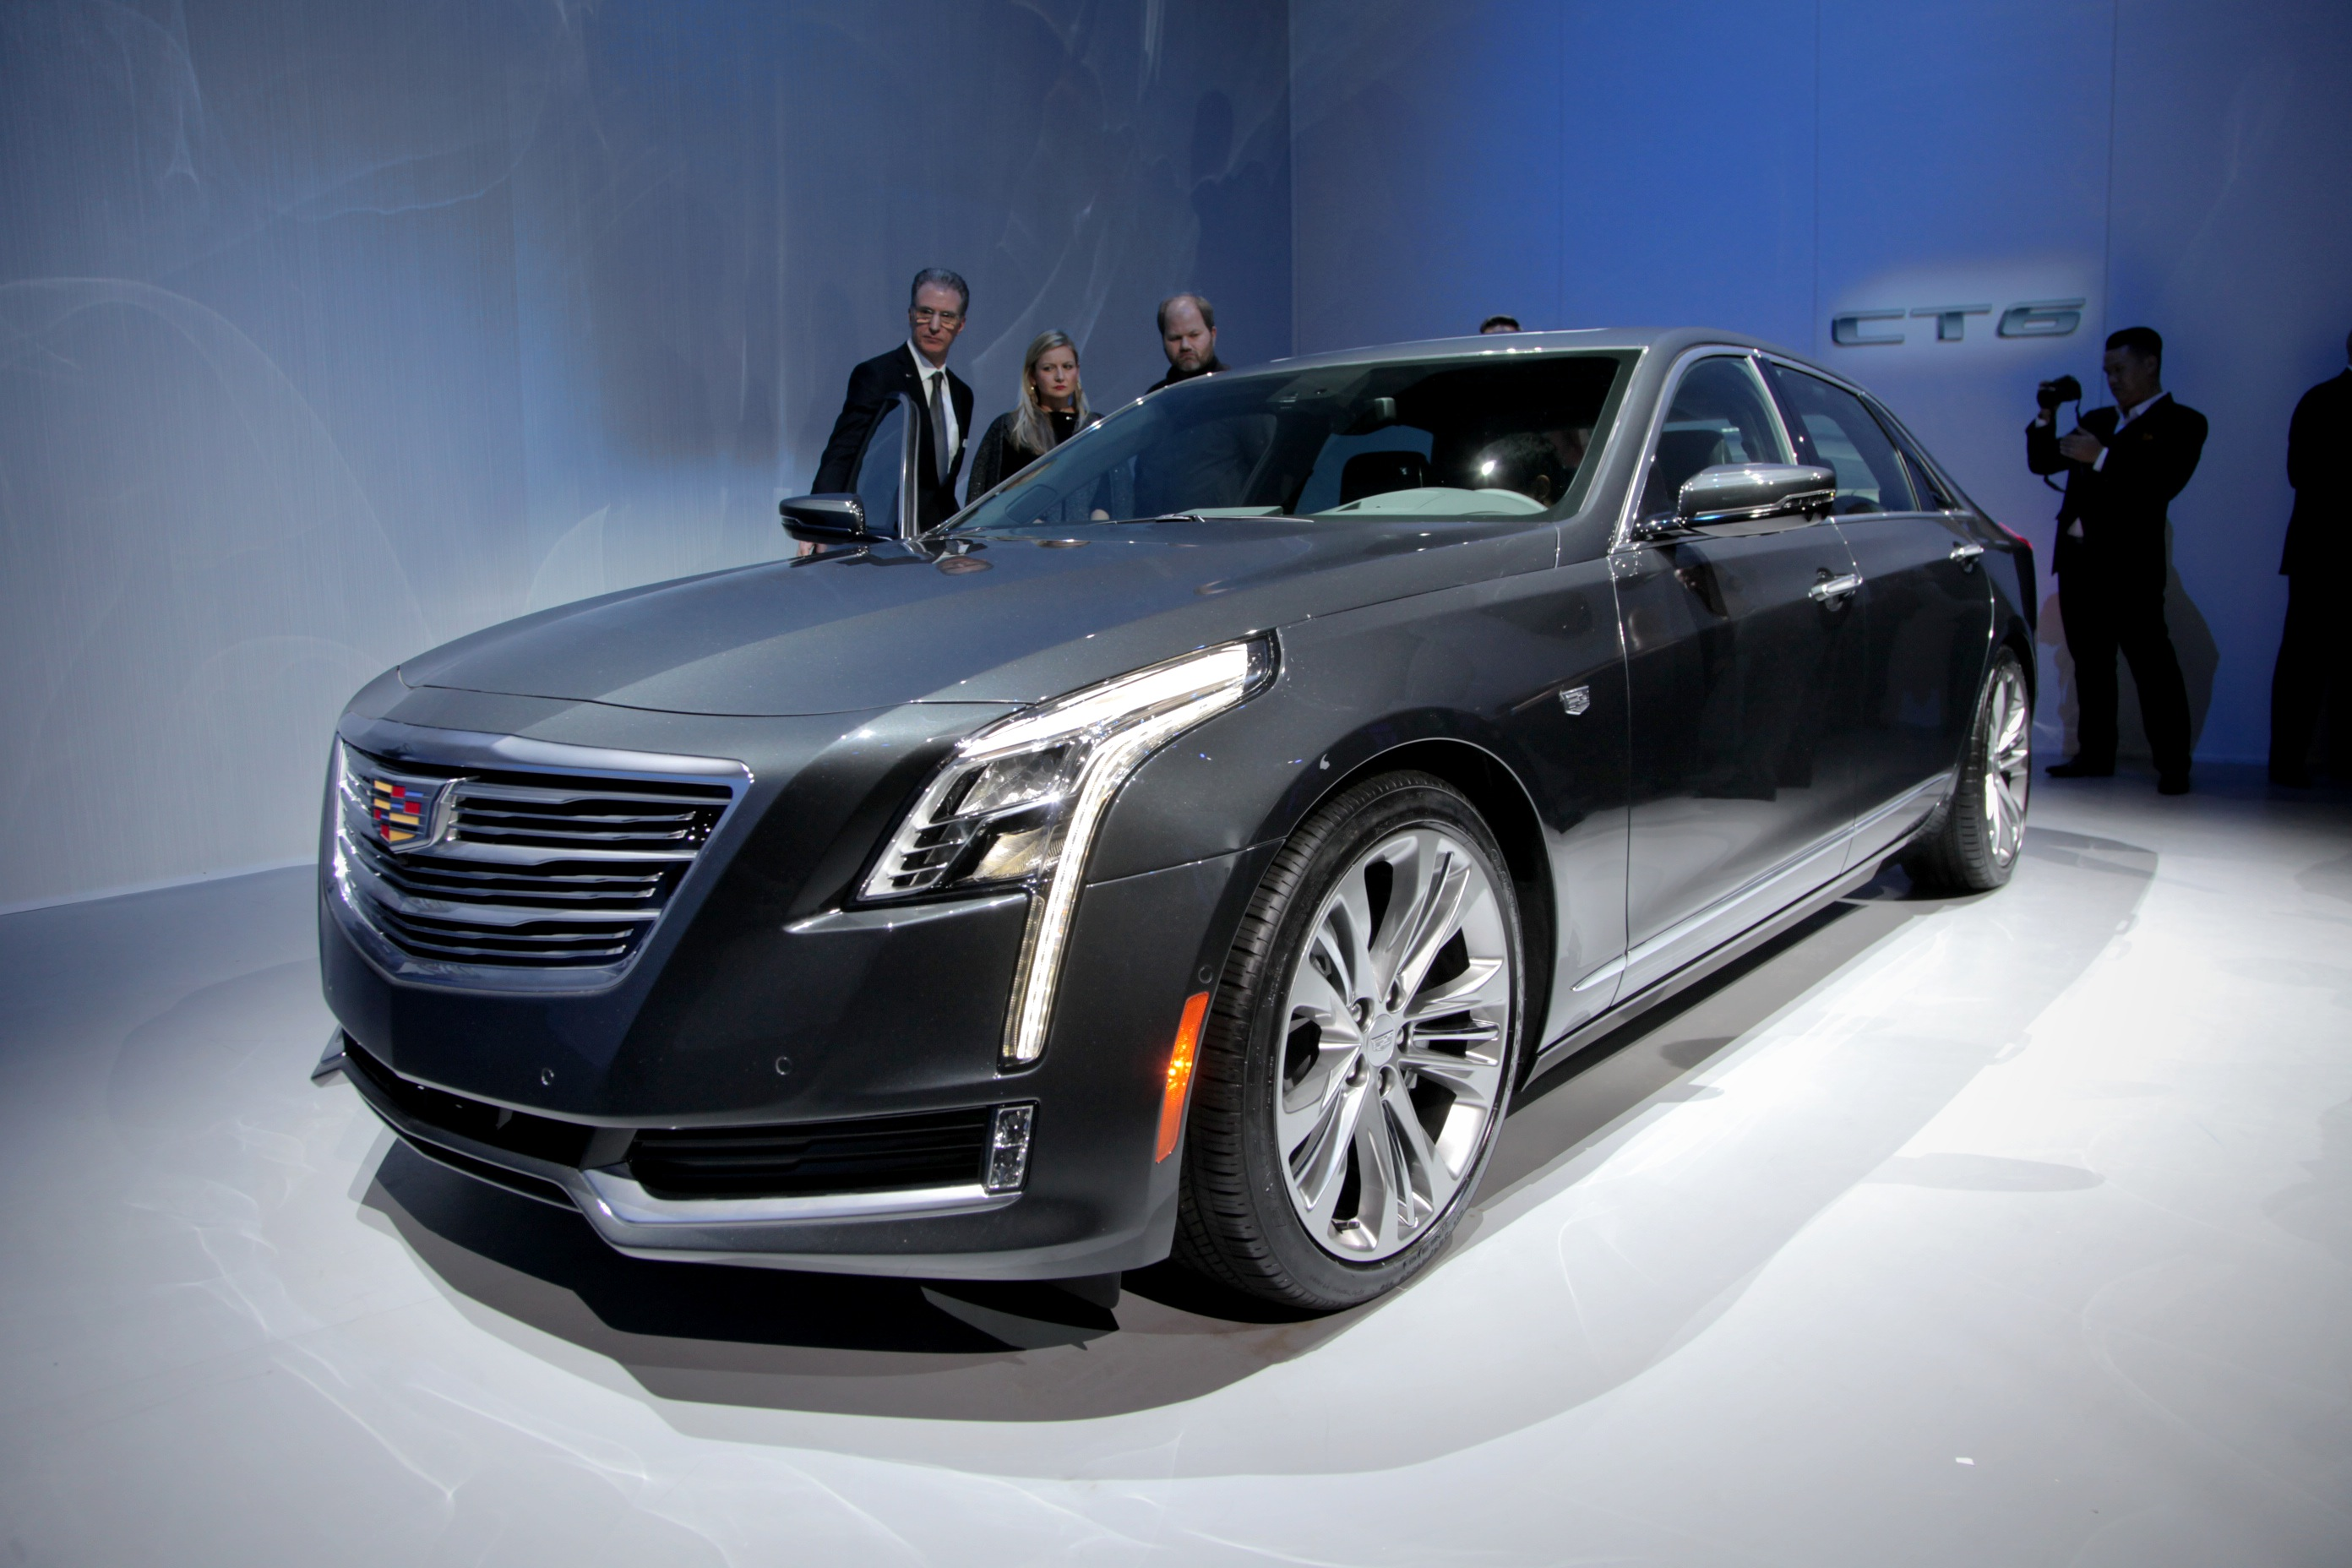 2016 Cadillac CT6 is Legit Luxury » AutoGuide.com News